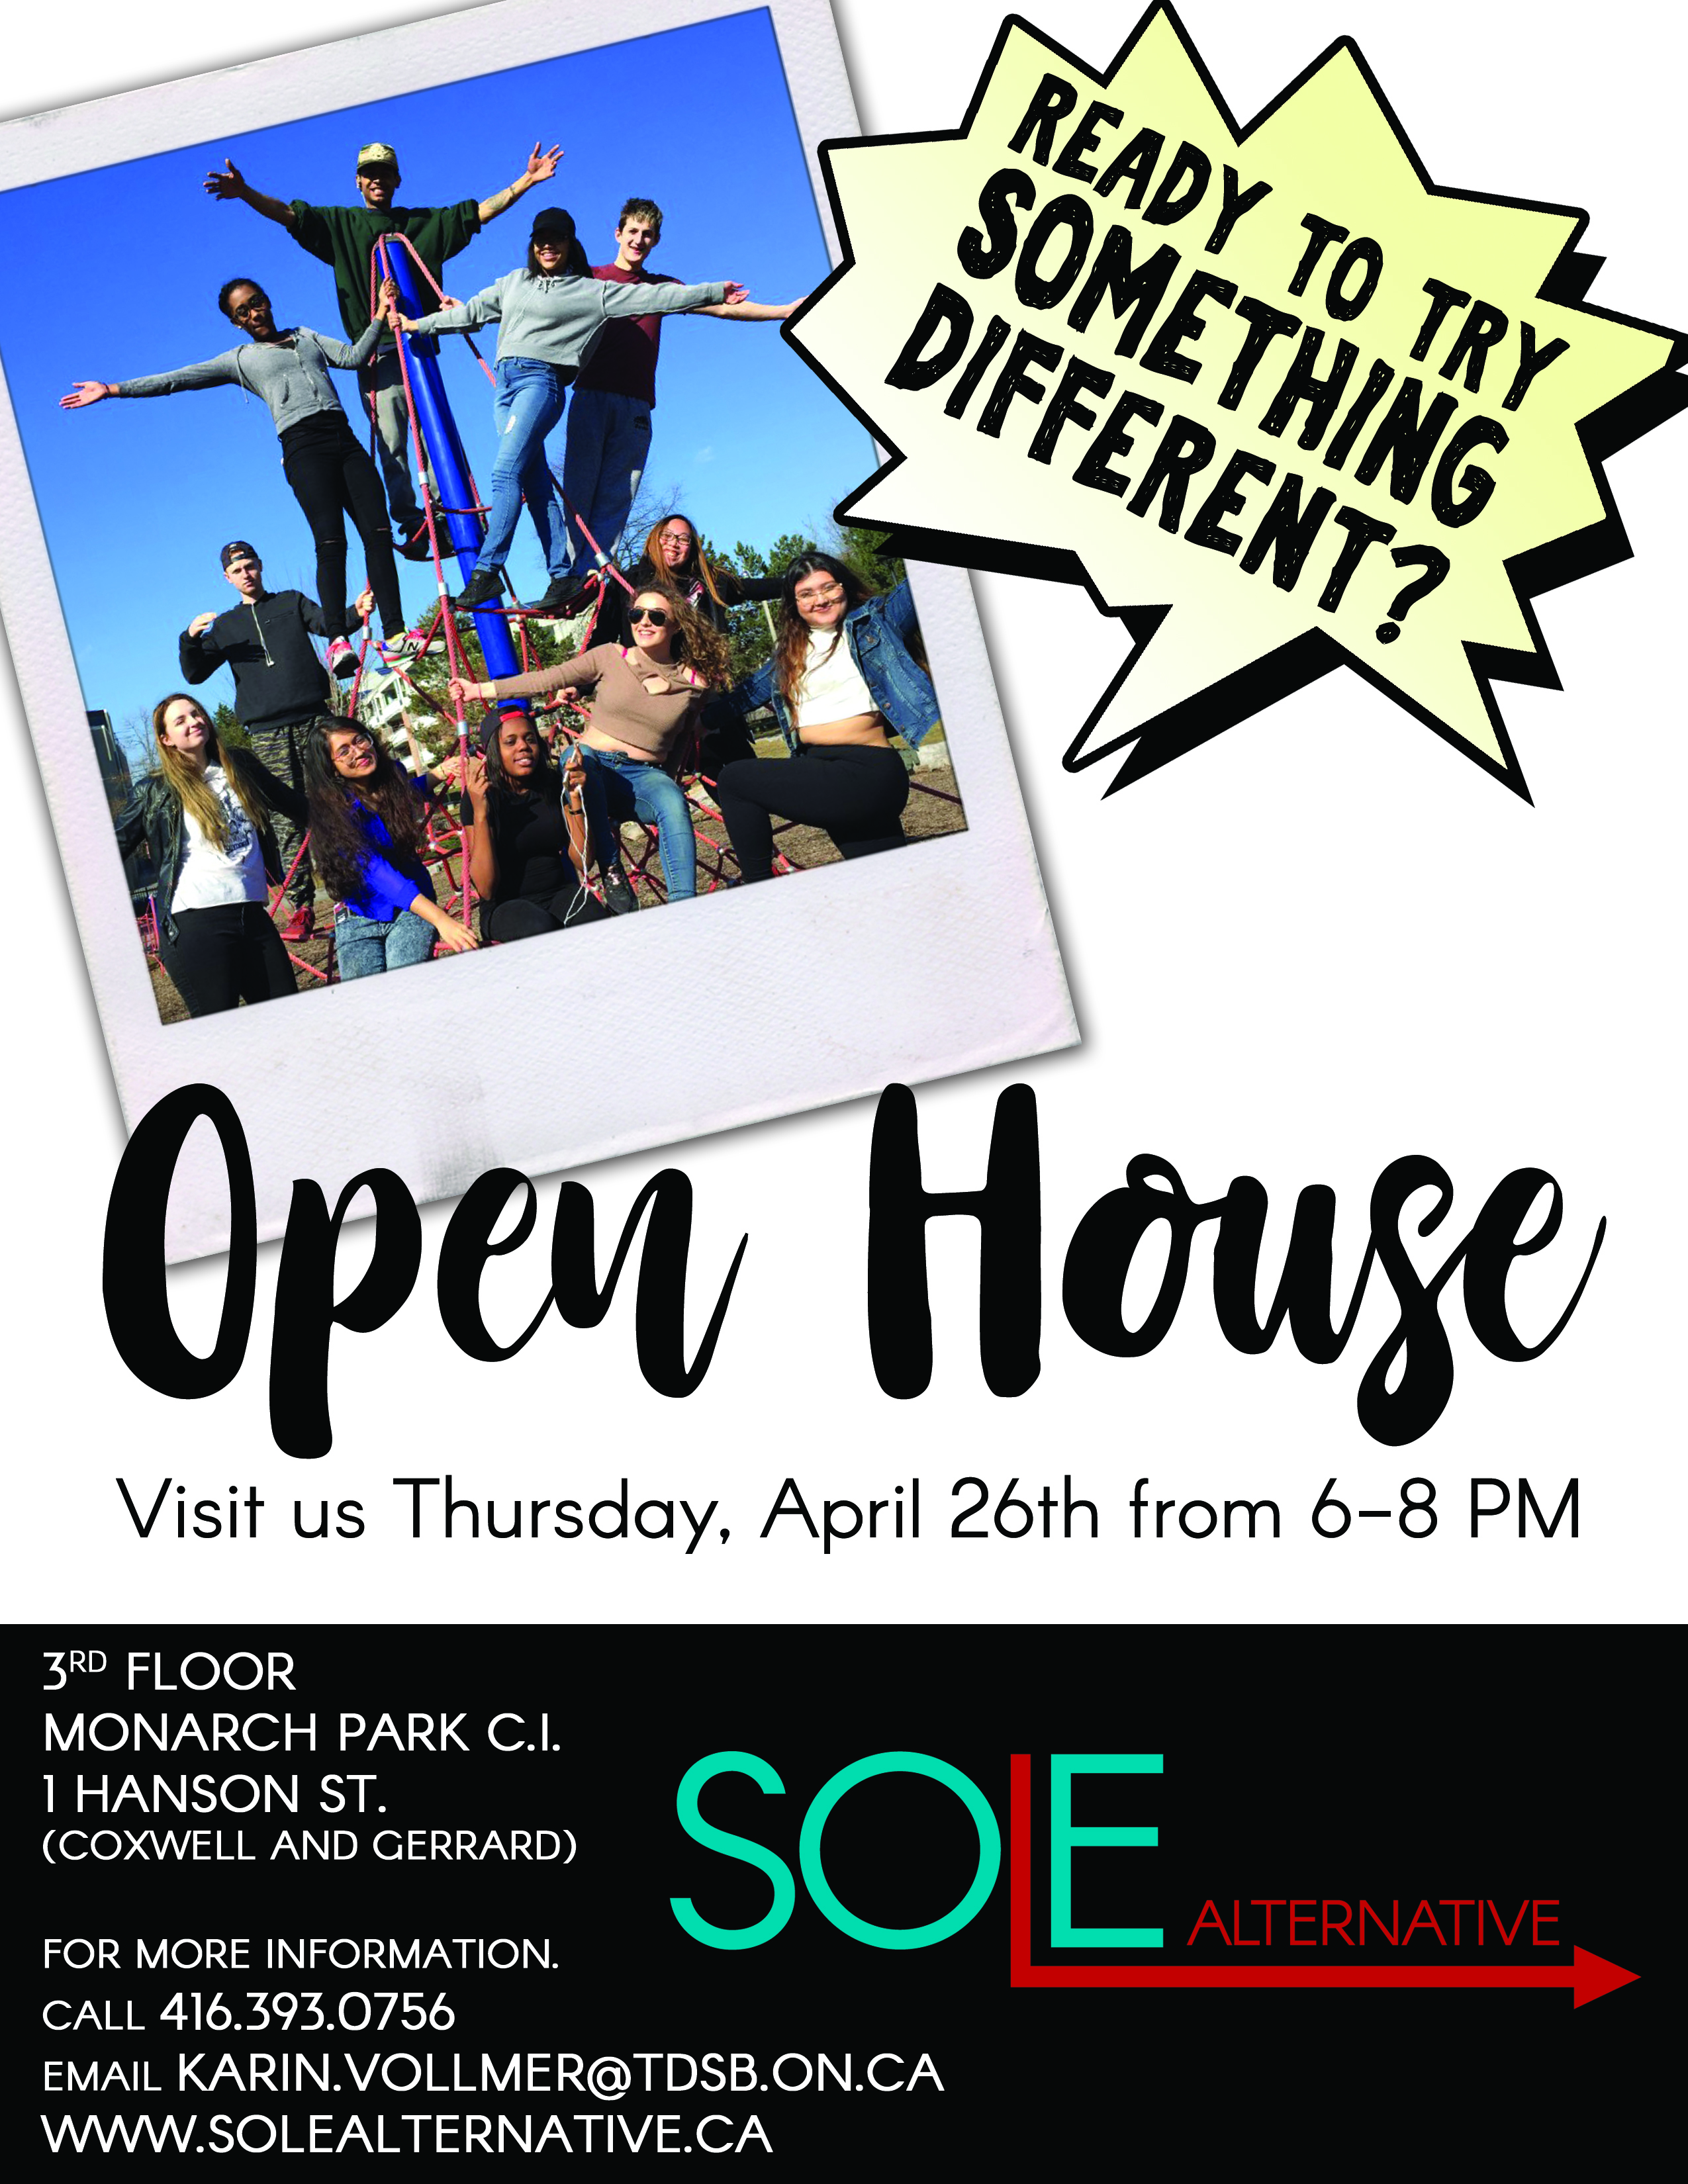 open house - april 26th, 6-8 pm